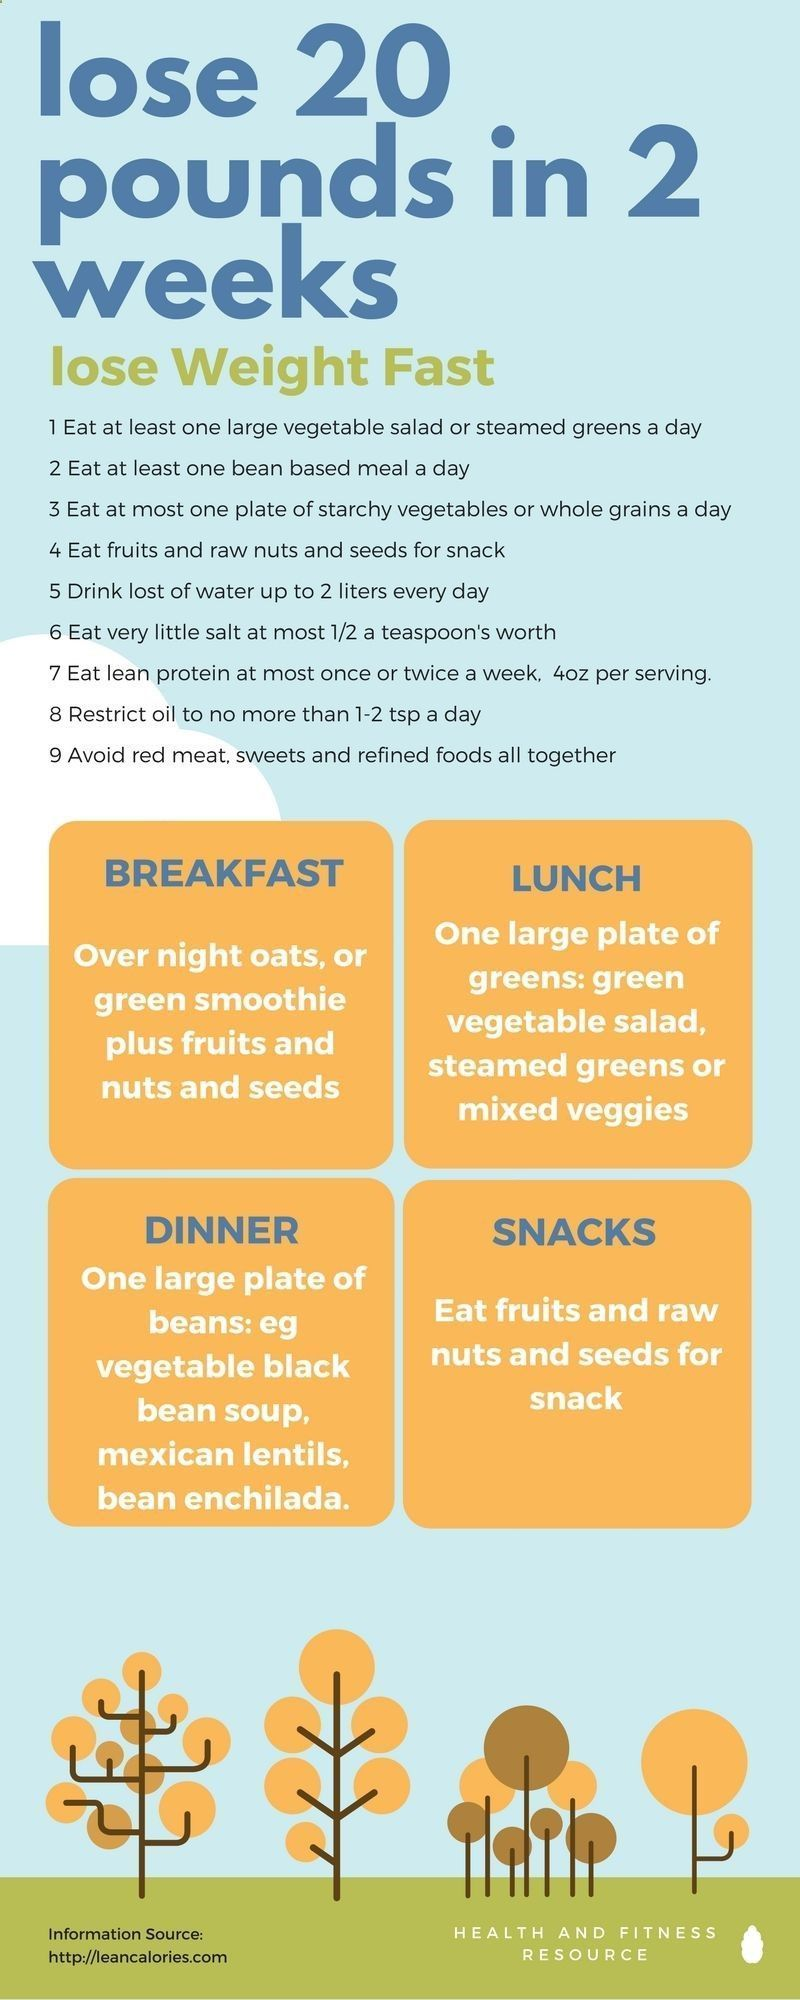 The 3 Week Diet Loss Weight Plan - How to lose 20 pounds in 2 weeks using a  nutritional guide used by Americas top family doctor to slim down obese  patients ...